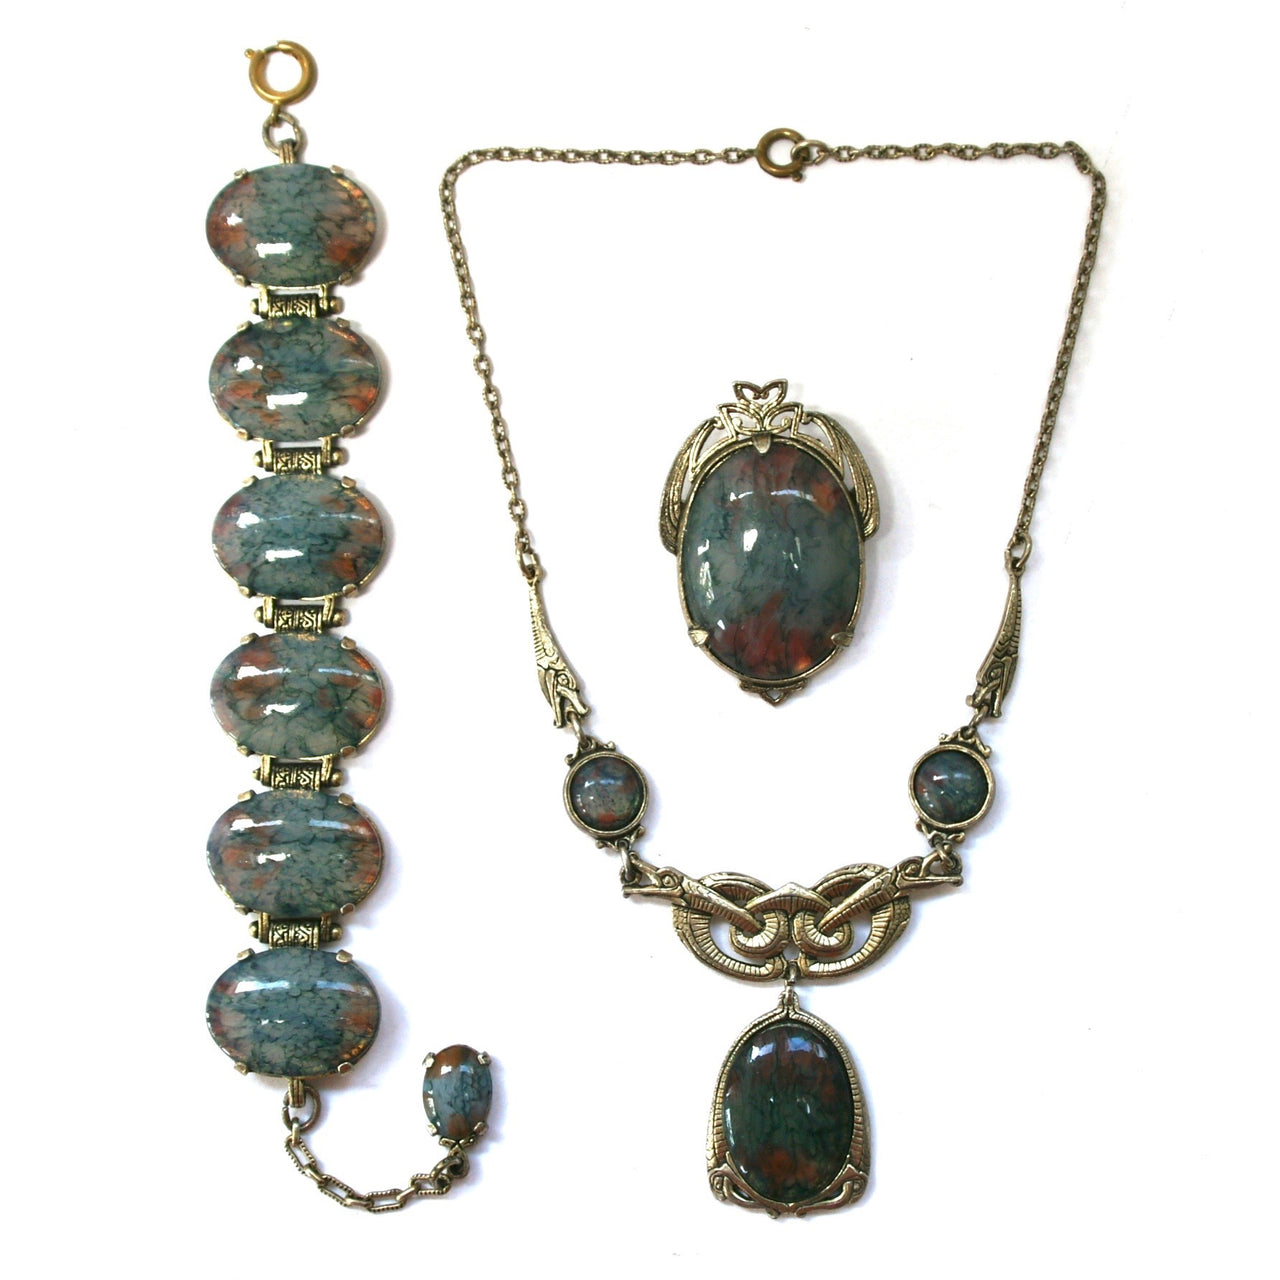 Eclectica Vintage Jewellery | UK | 1960s Miracle Necklace, Brooch and Bracelet Set, Blue